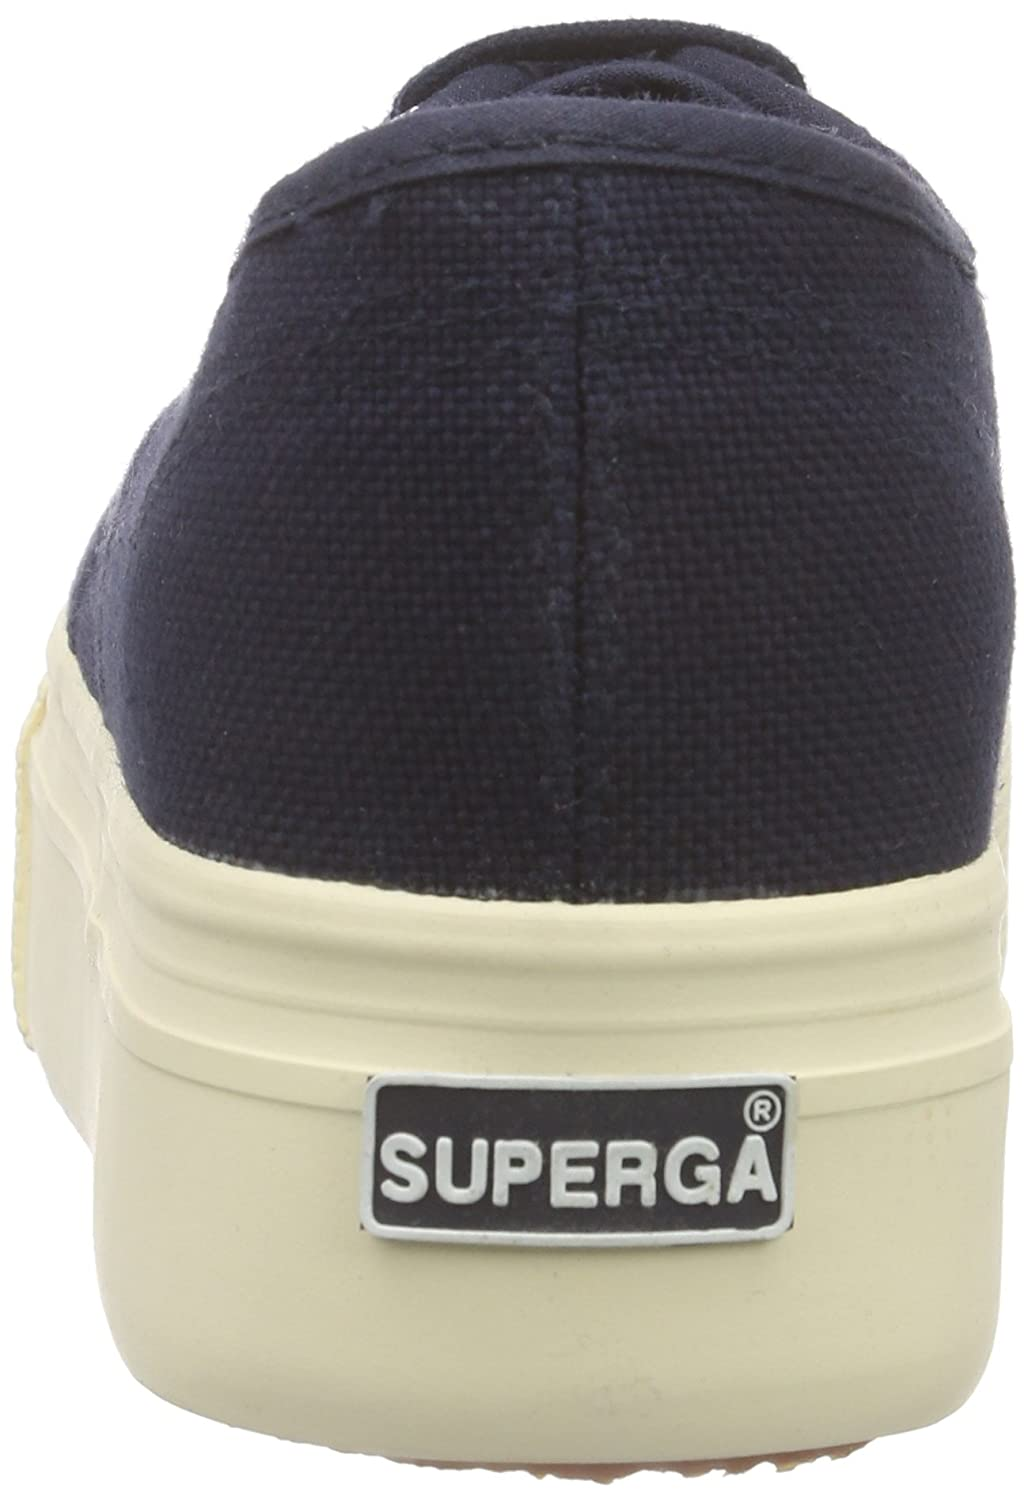 Superga 2790 Linea up and Down Womens Trainers B00H5VOQ70 39.5 M EU|Navy